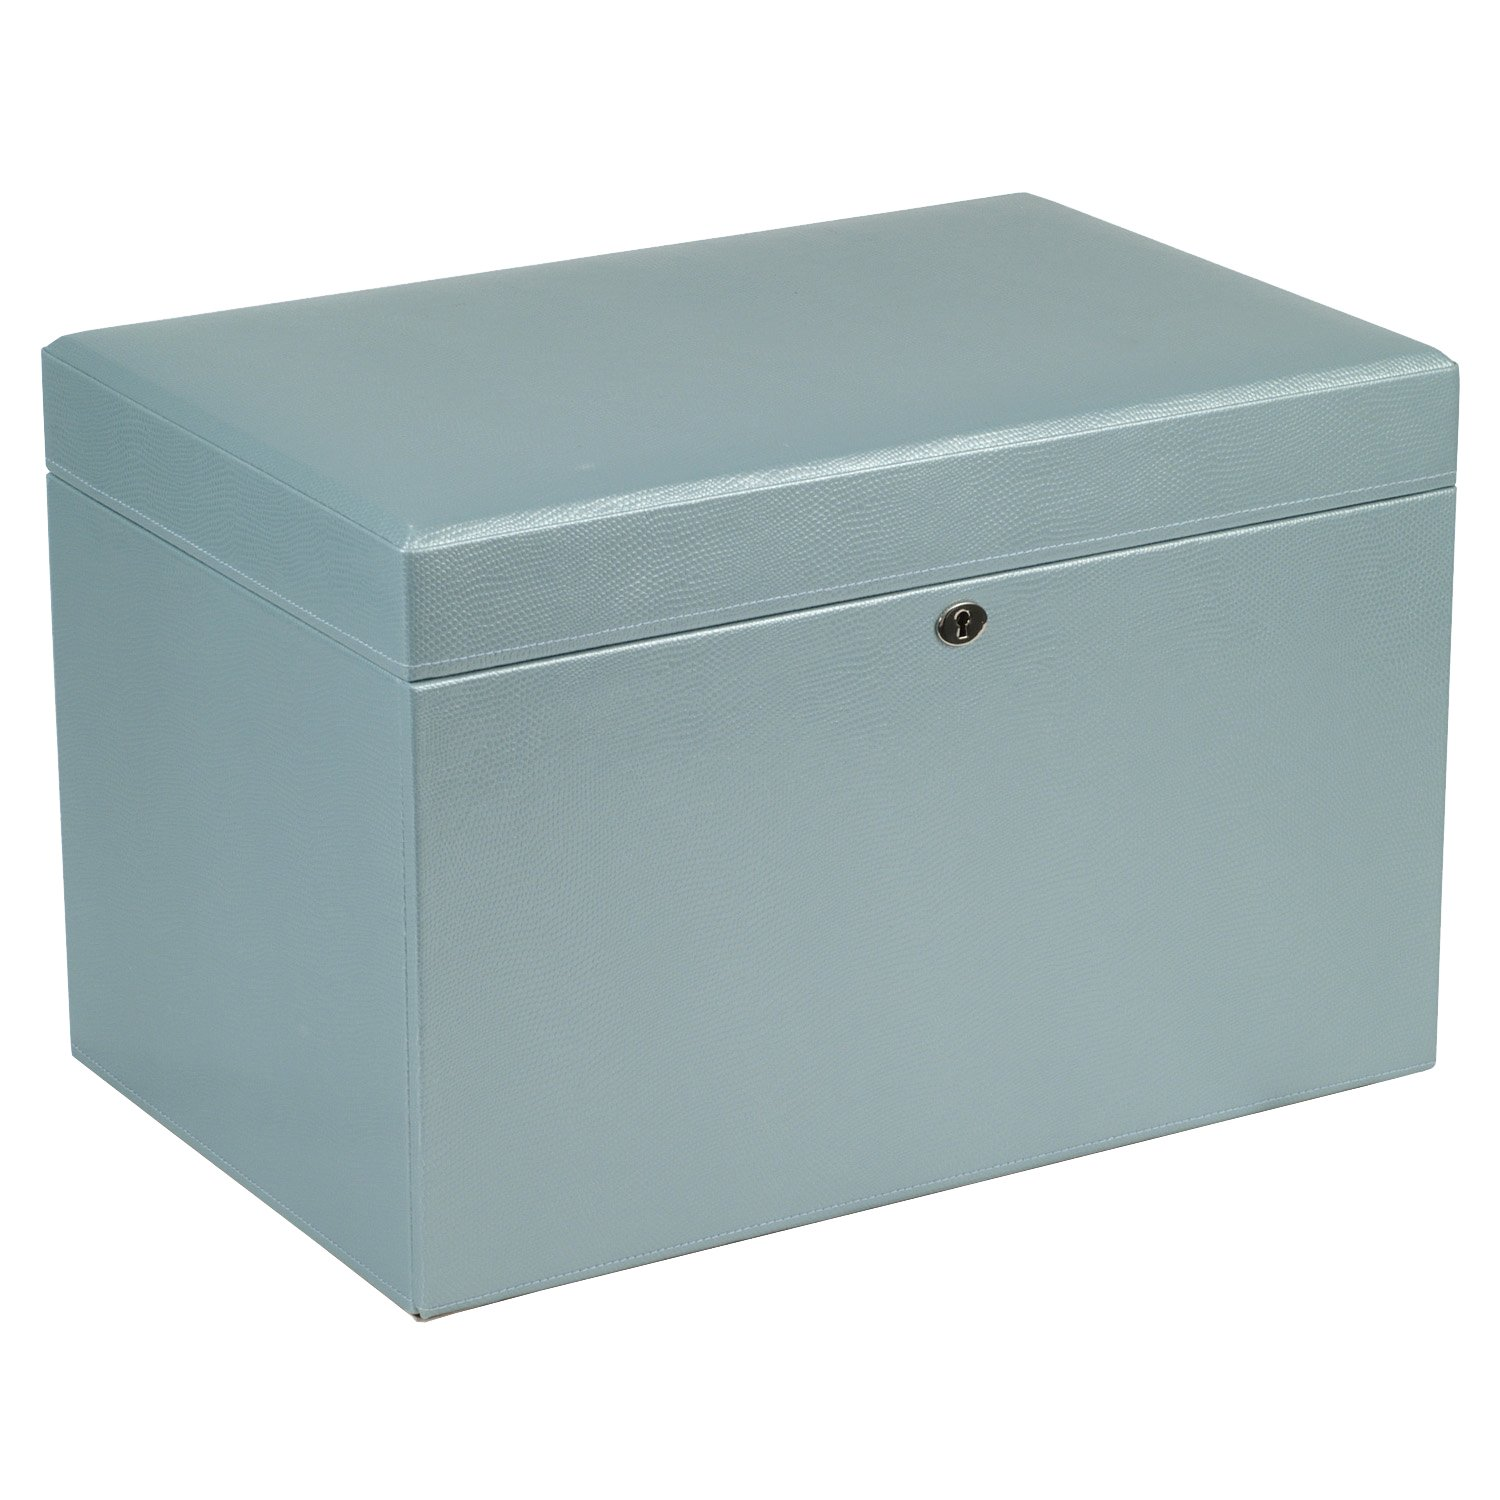 WOLF 315024 London Large Jewelry Box, Ice